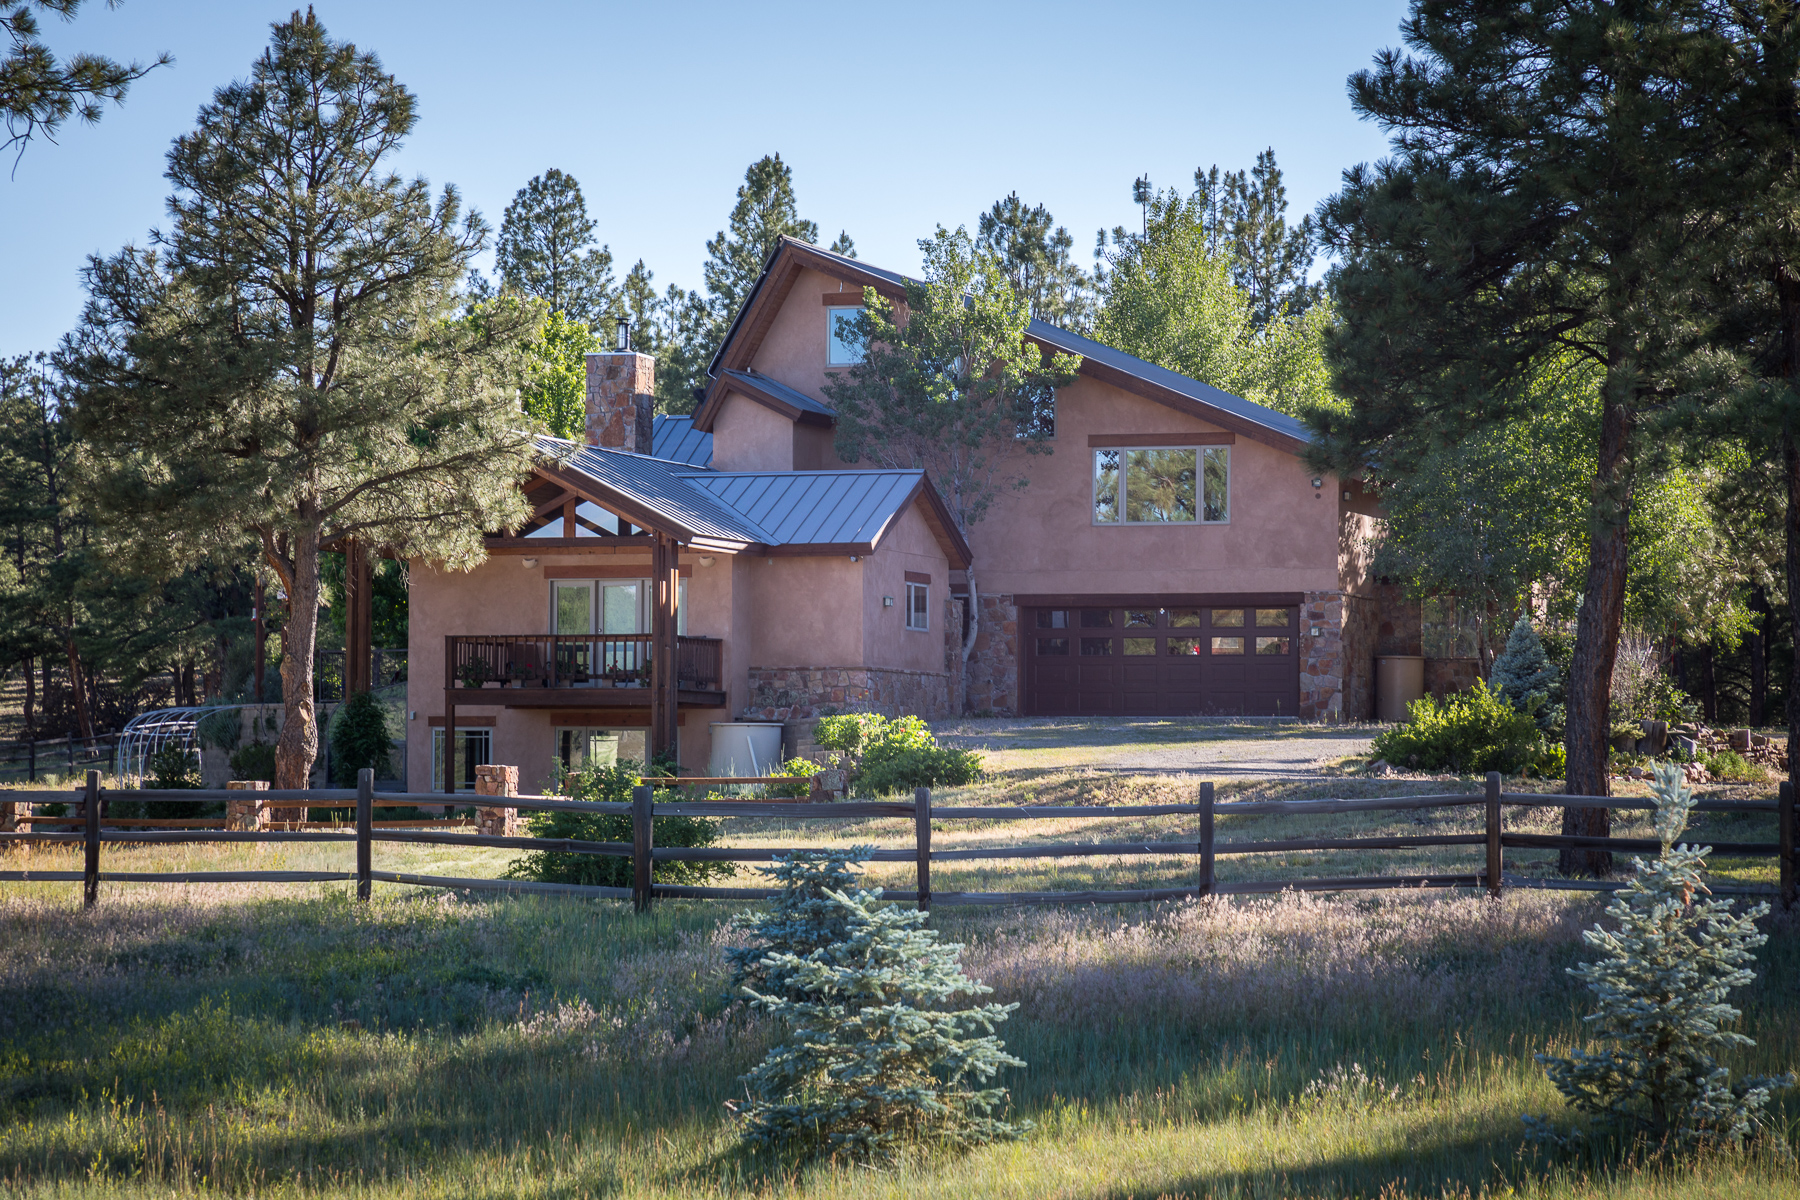 Casa Unifamiliar por un Venta en Peaceful Meadow Ranch 2415 Echo Canyon Ranch Lane, Pagosa Springs, Colorado, 81147 Estados Unidos